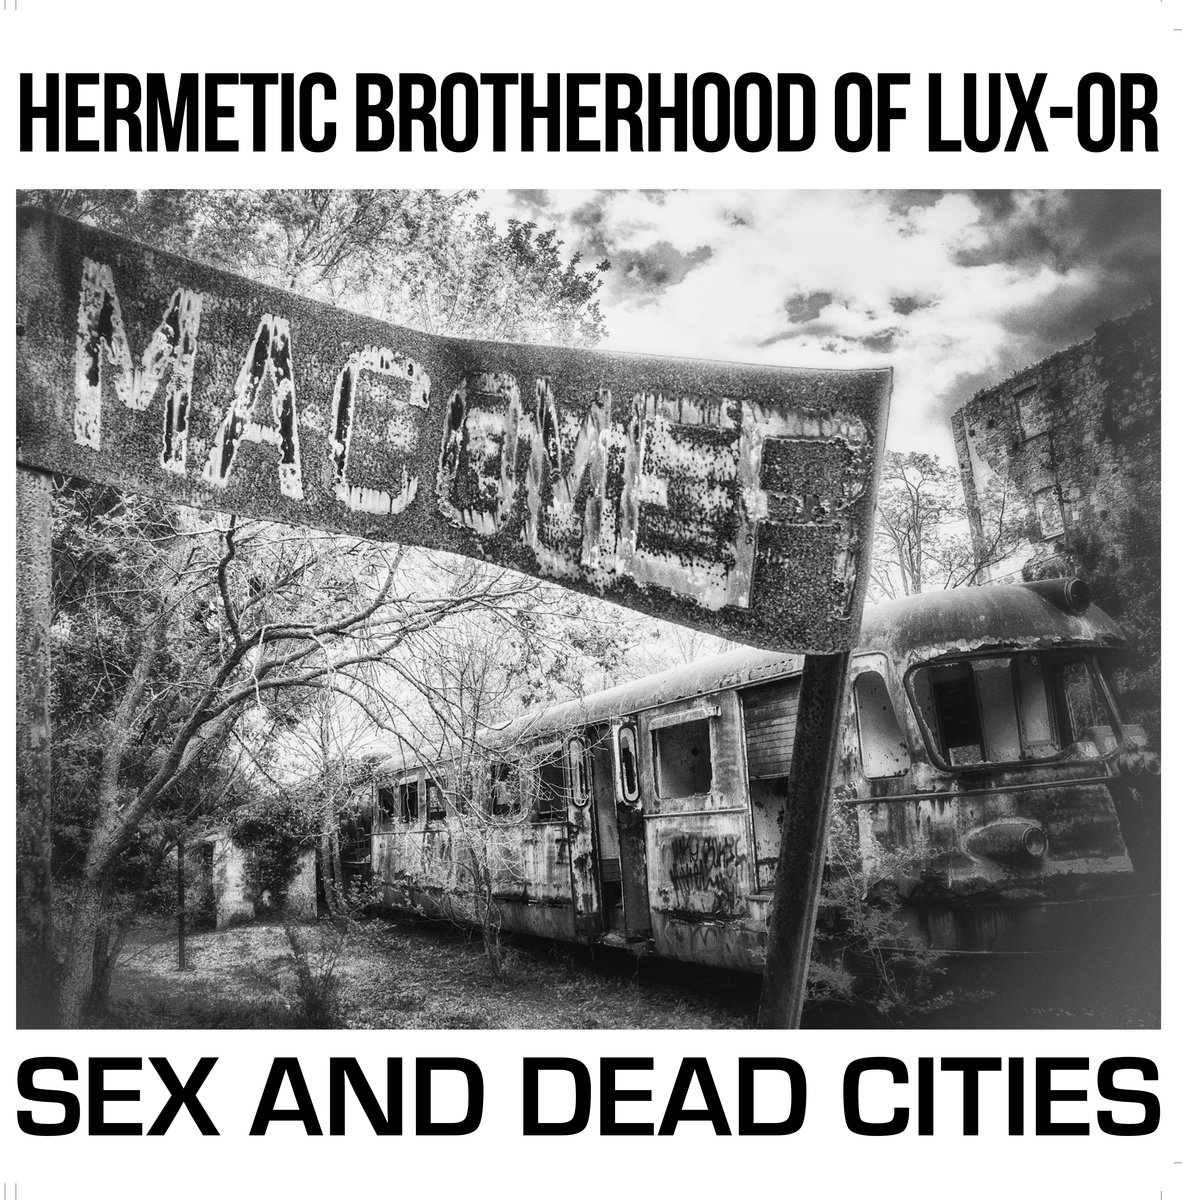 sex and dead cities - hermetic brotherood of luxor - transponsonic - sa scena sarda - 2019 - mirko santoru